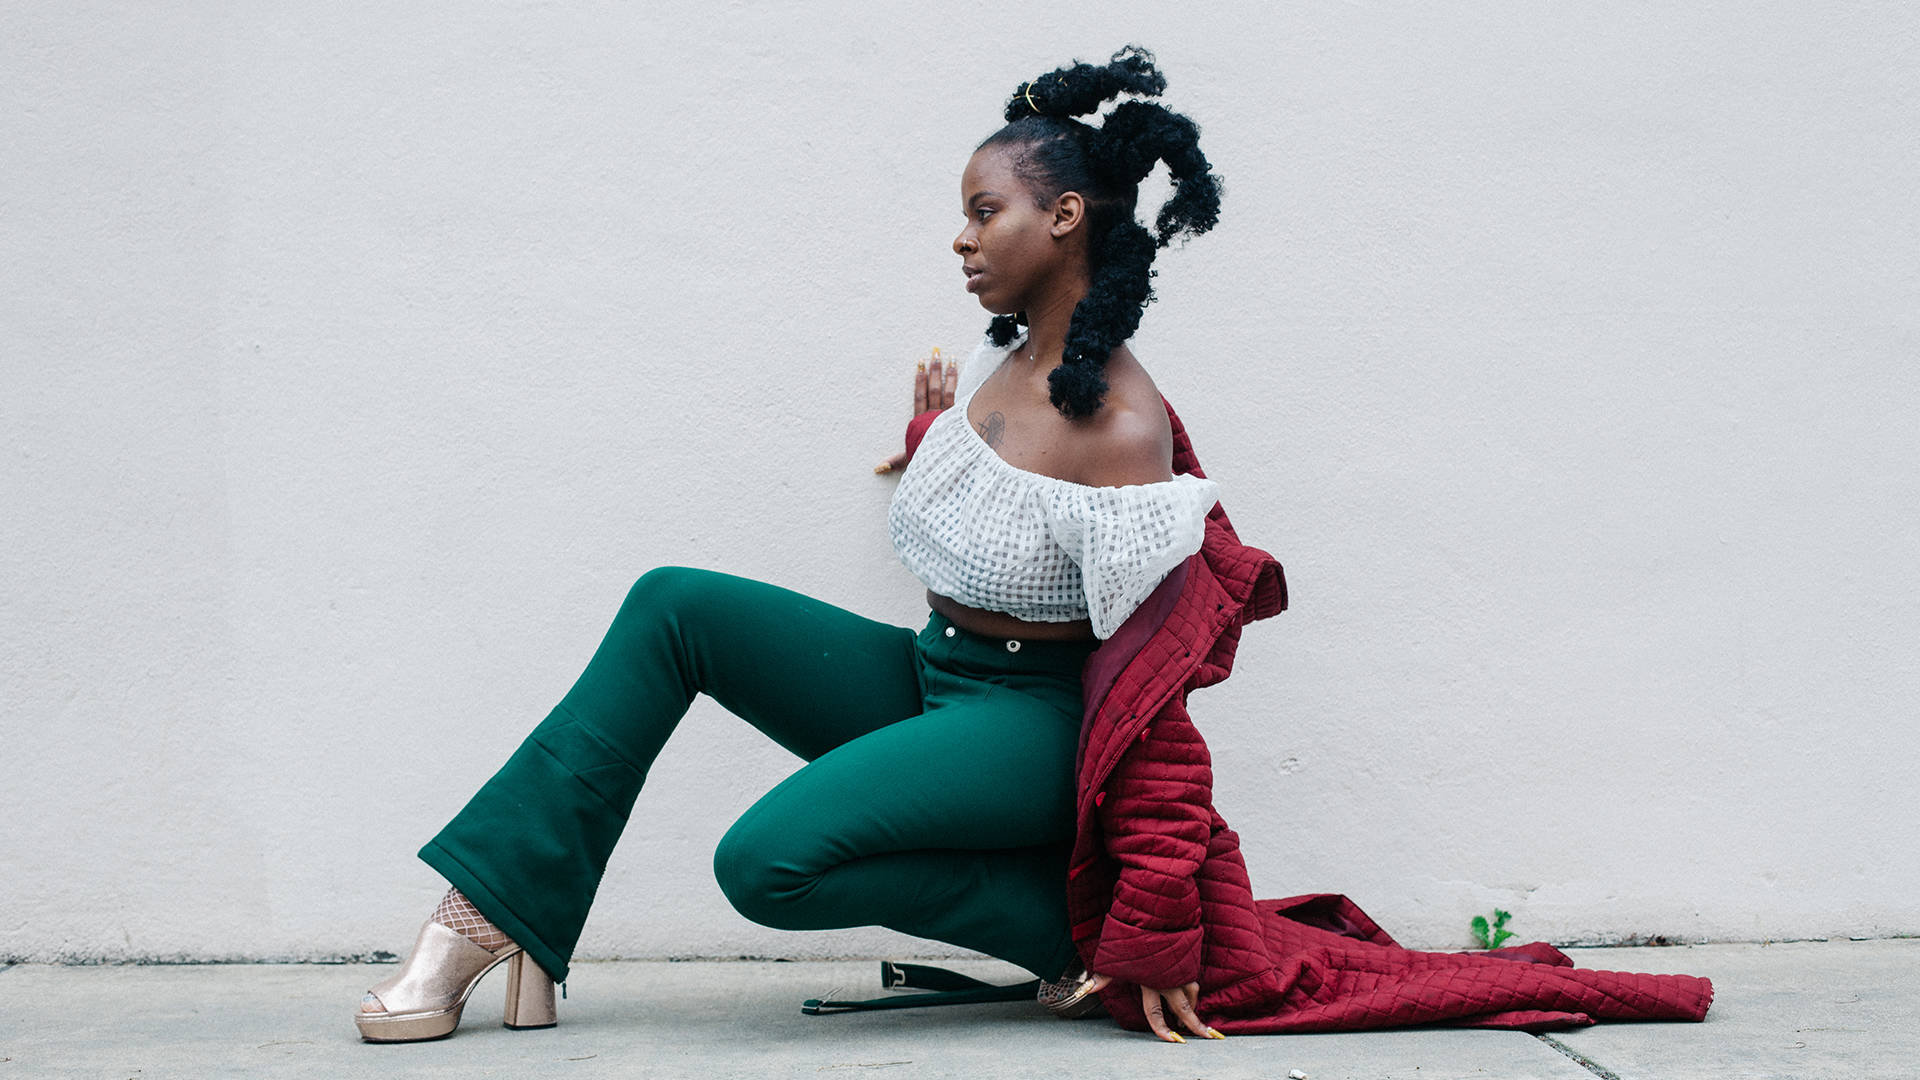 On her spiritually rooted sophomore EP, 'Flavor of Green,' Queens D.Light grapples with uncertainty. Adrian Octavius Walker